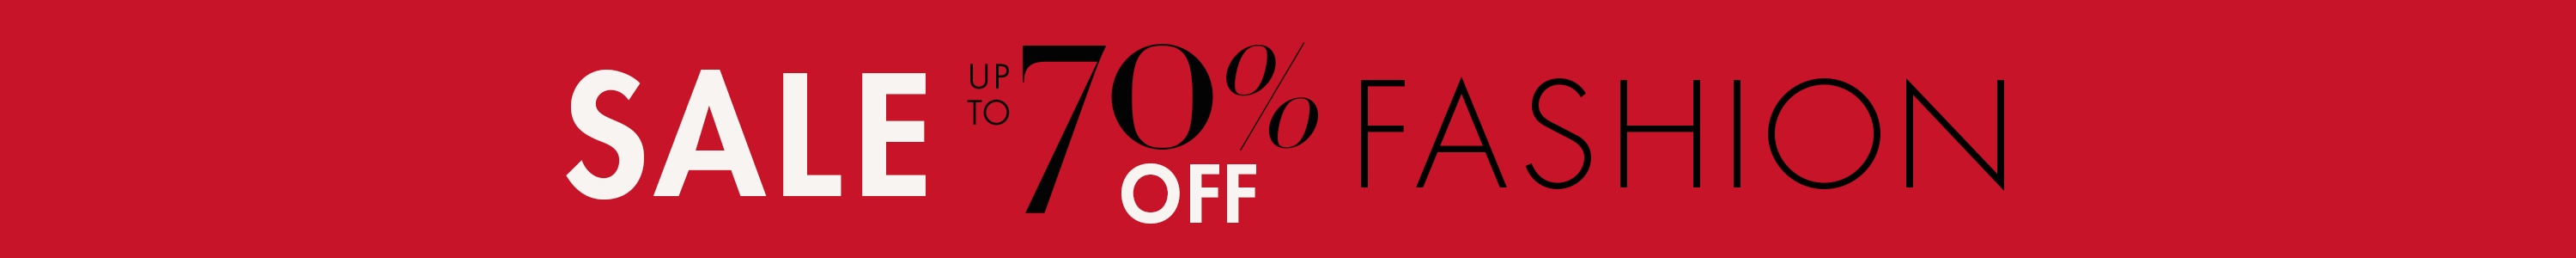 Sale: Up to 70% Off Fashion